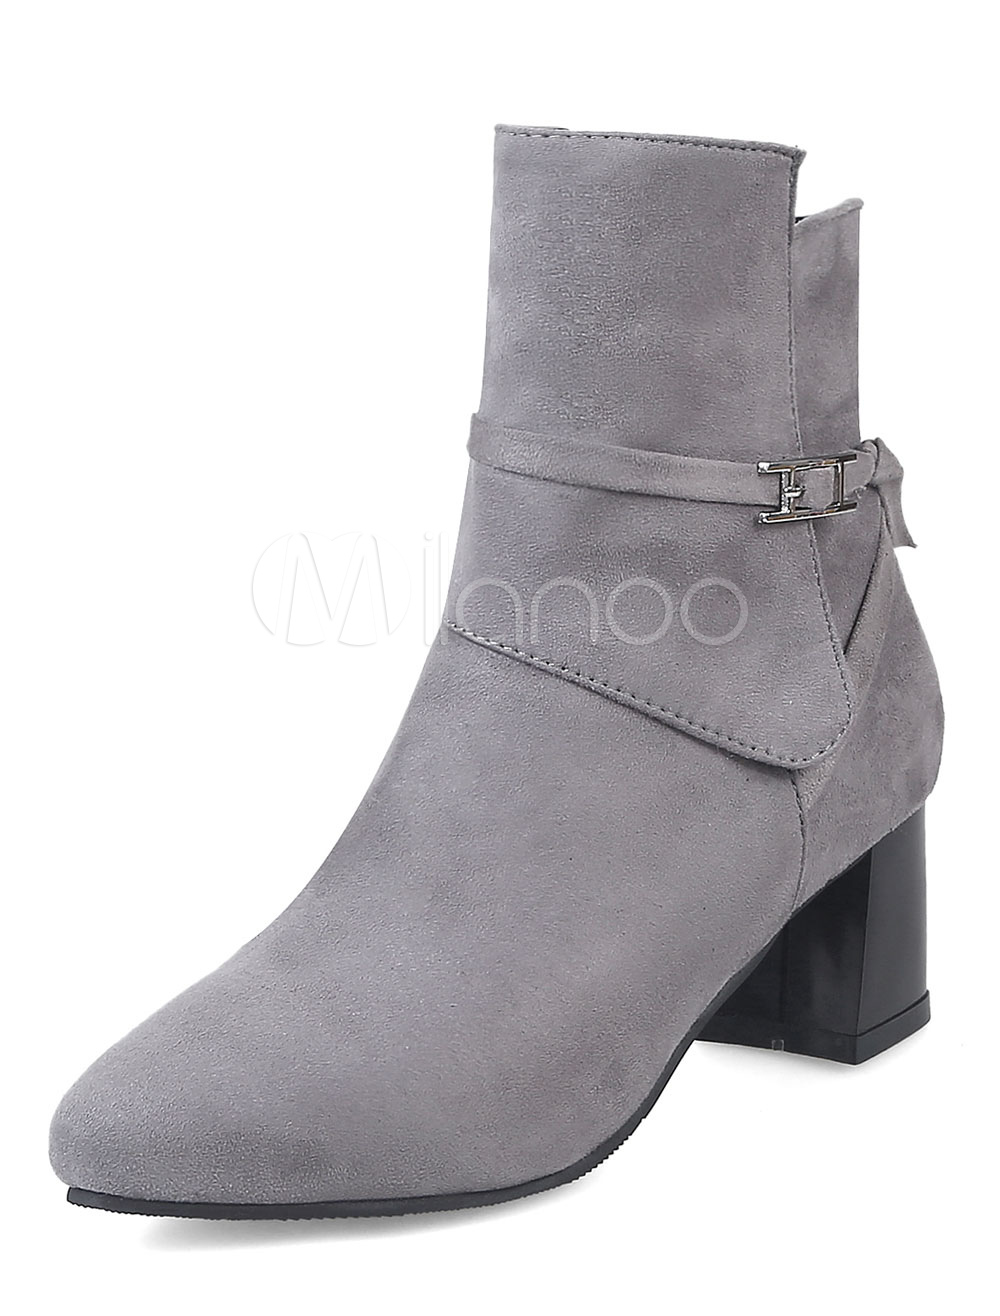 Buy Grey Suede Boots Women Ankle Boots Pointed Toe Winter Boots for $37.99 in Milanoo store